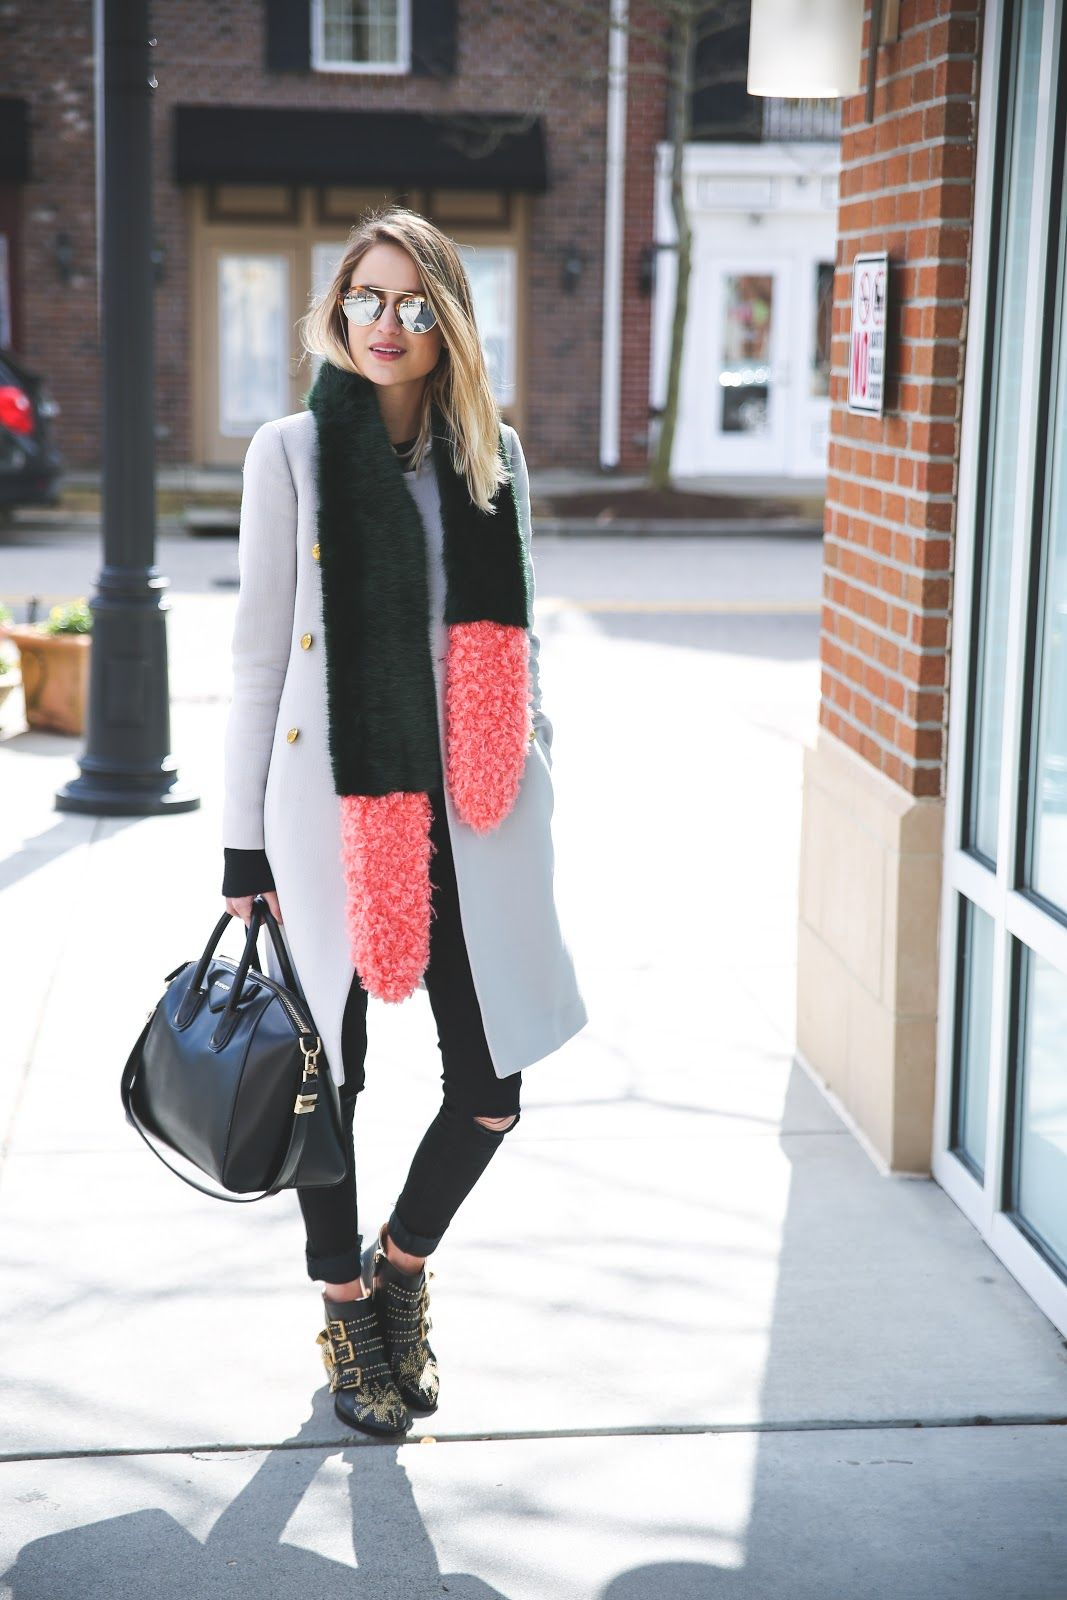 Little Blonde Book by Taylor Morgan | A Life and Style Blog grey coat, statement…